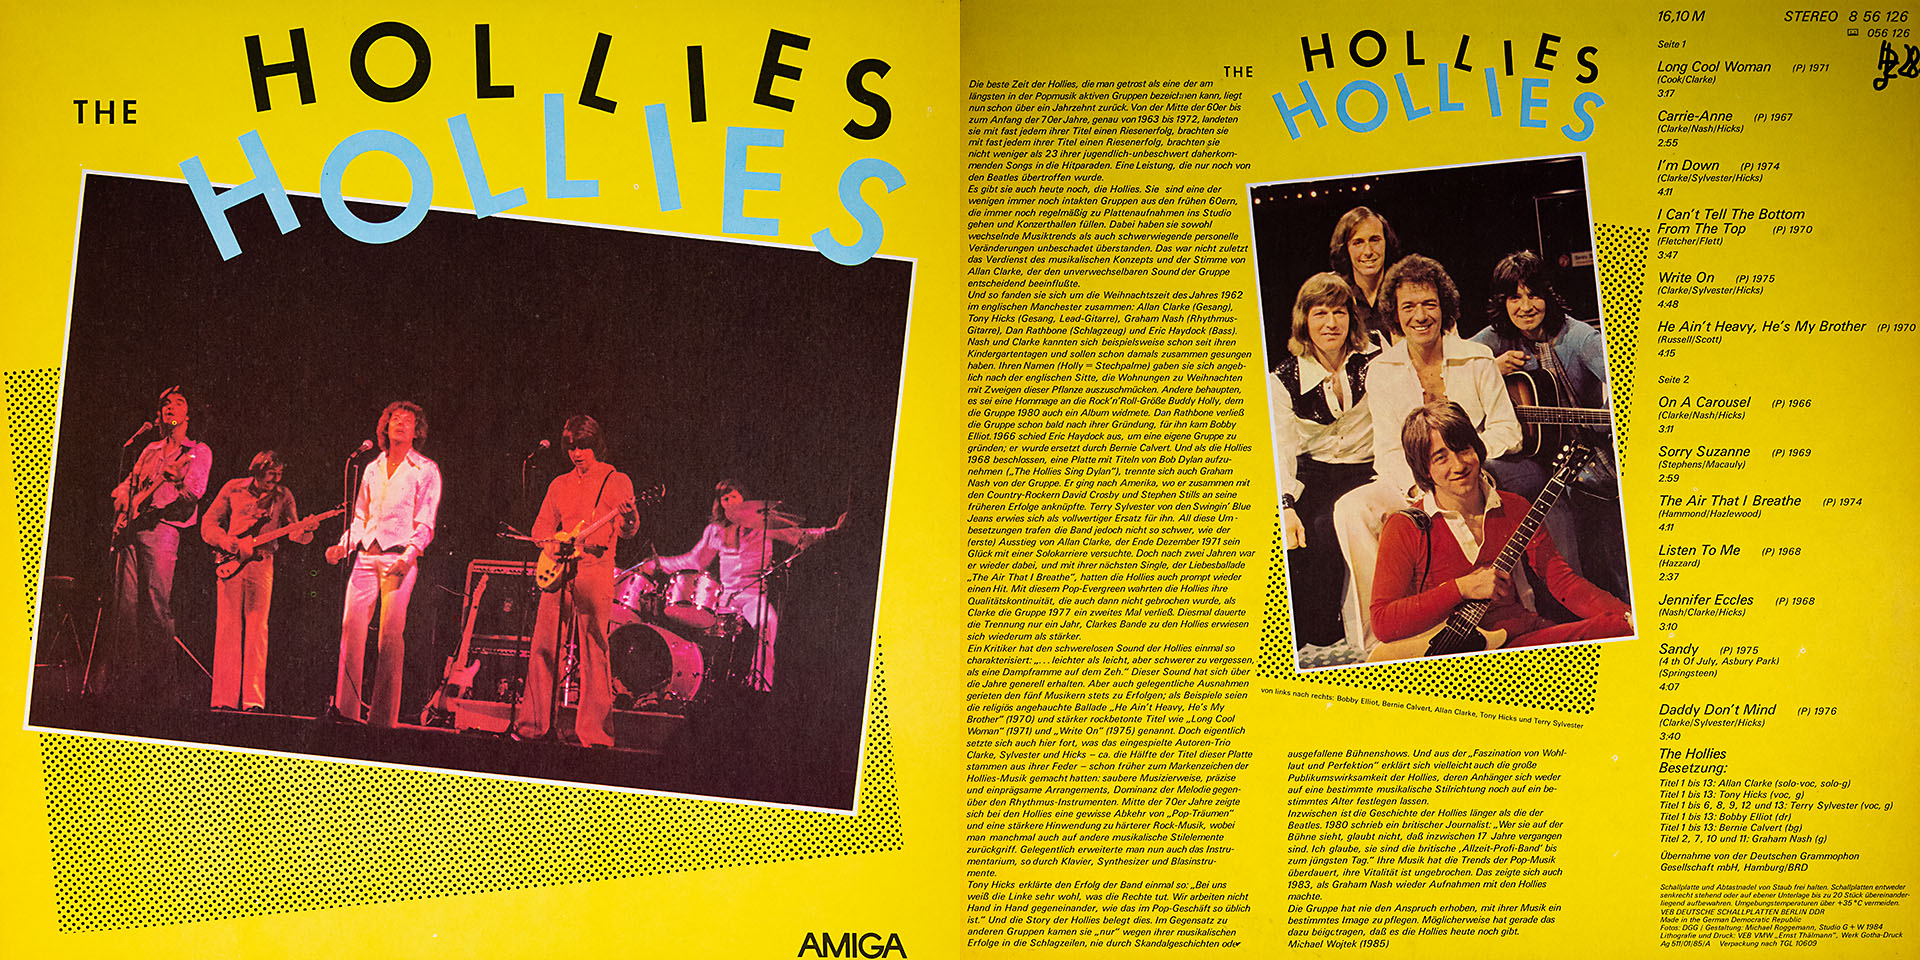 The Hollies - The Hollies